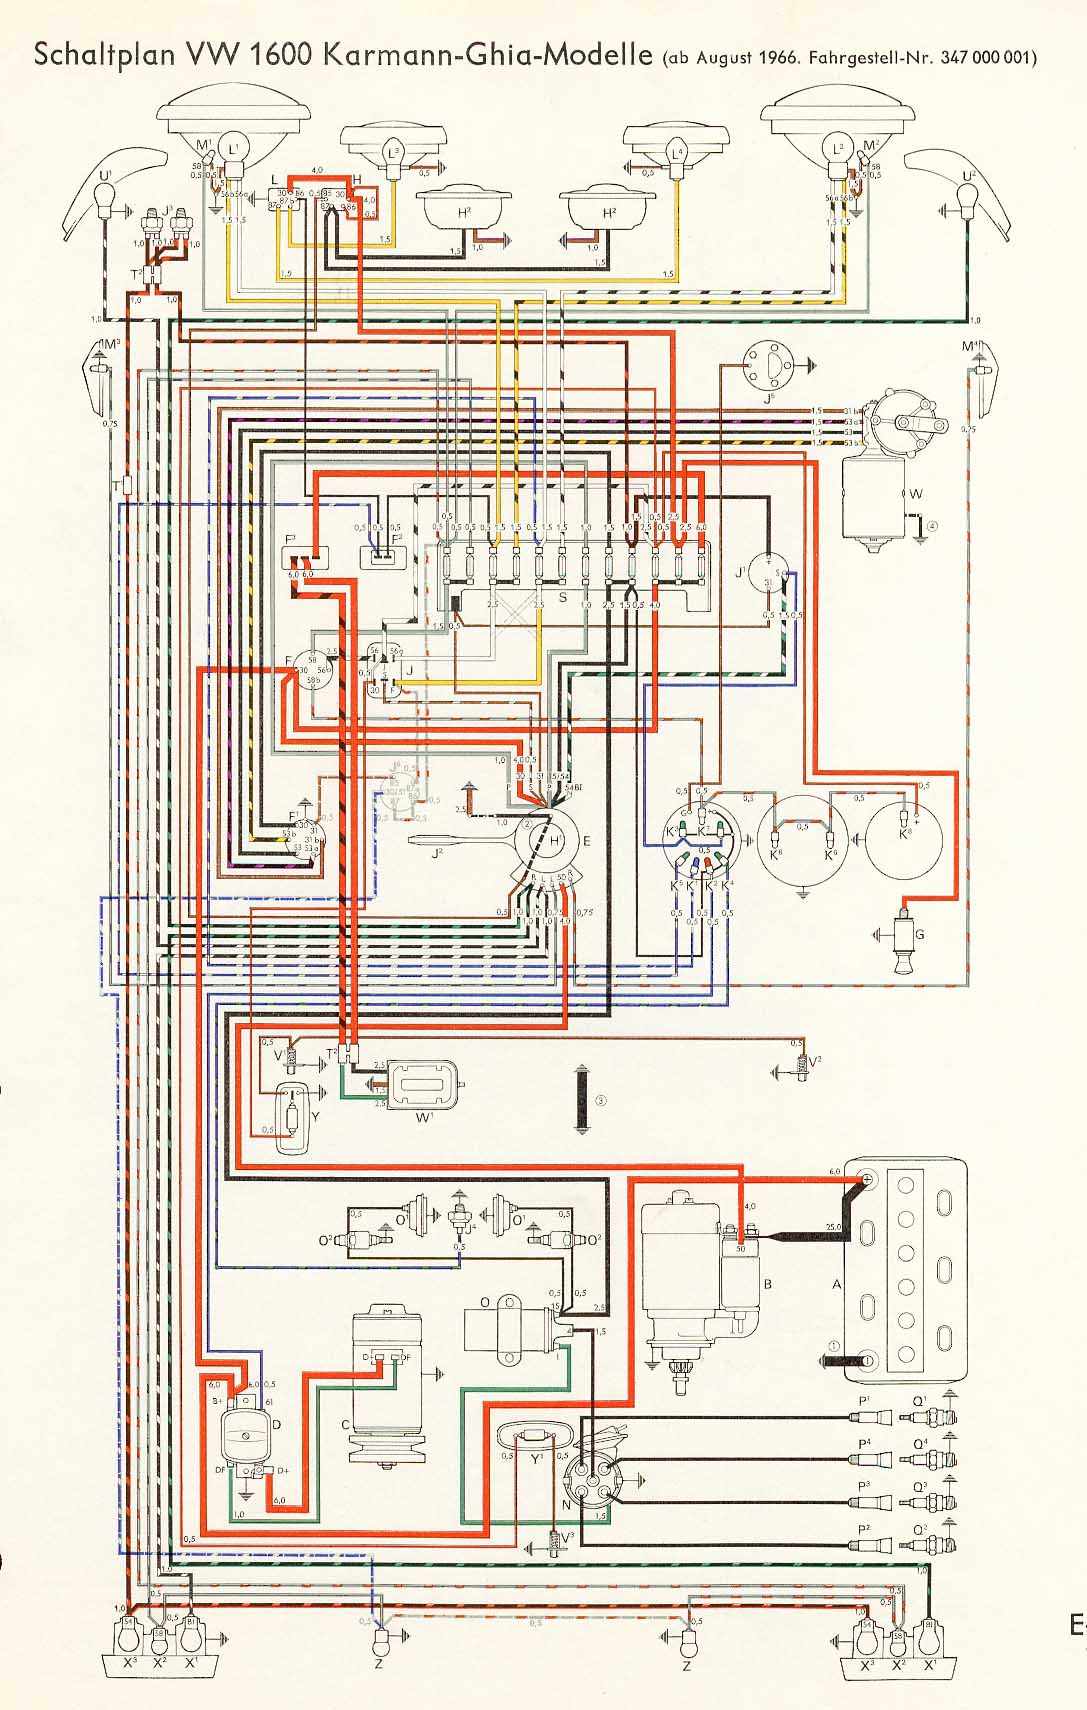 hight resolution of 1967 vw karmann ghia wiring diagram wiring diagram third level rh 12 2 11 jacobwinterstein com 1969 vw beetle wiring diagram karmann ghia horn wiring